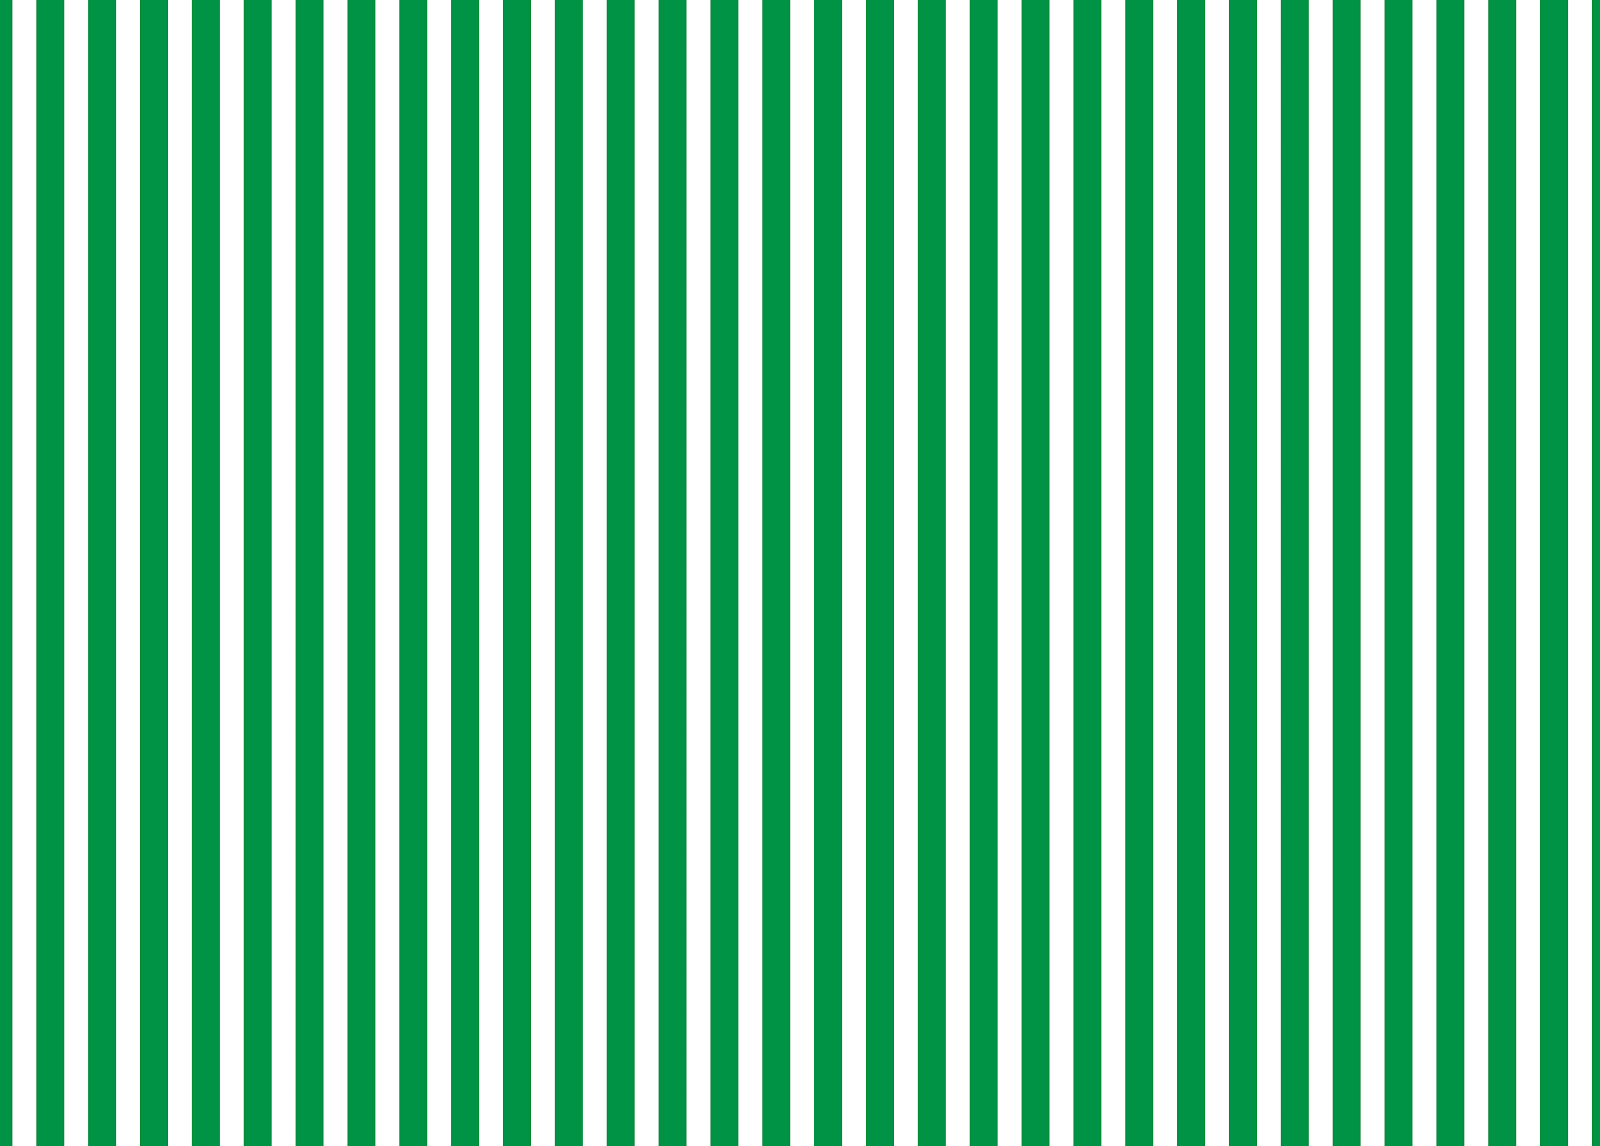 Green And White Striped Background Green stripe blog background 1600x1146